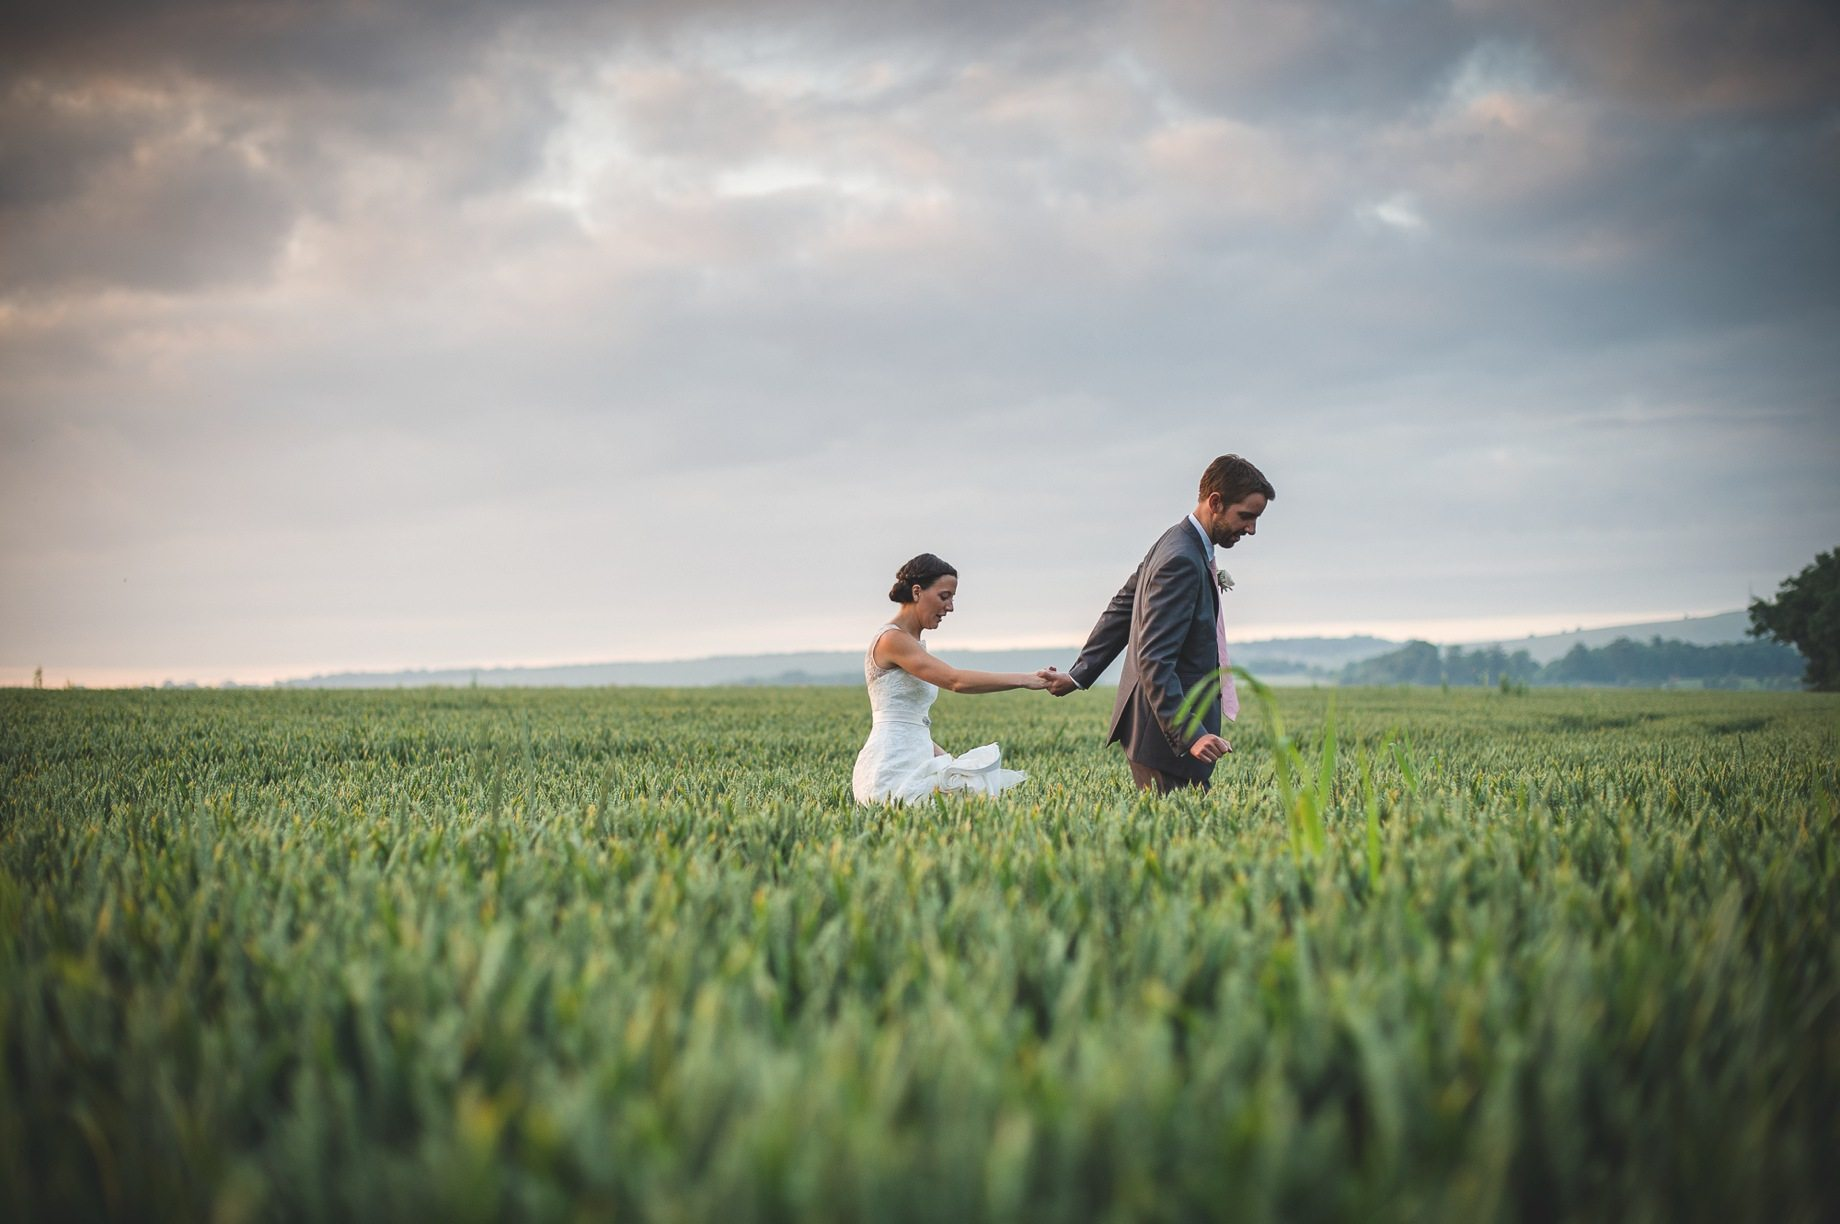 West Sussex wedding photography by Guy Collier - Sue and Stephen